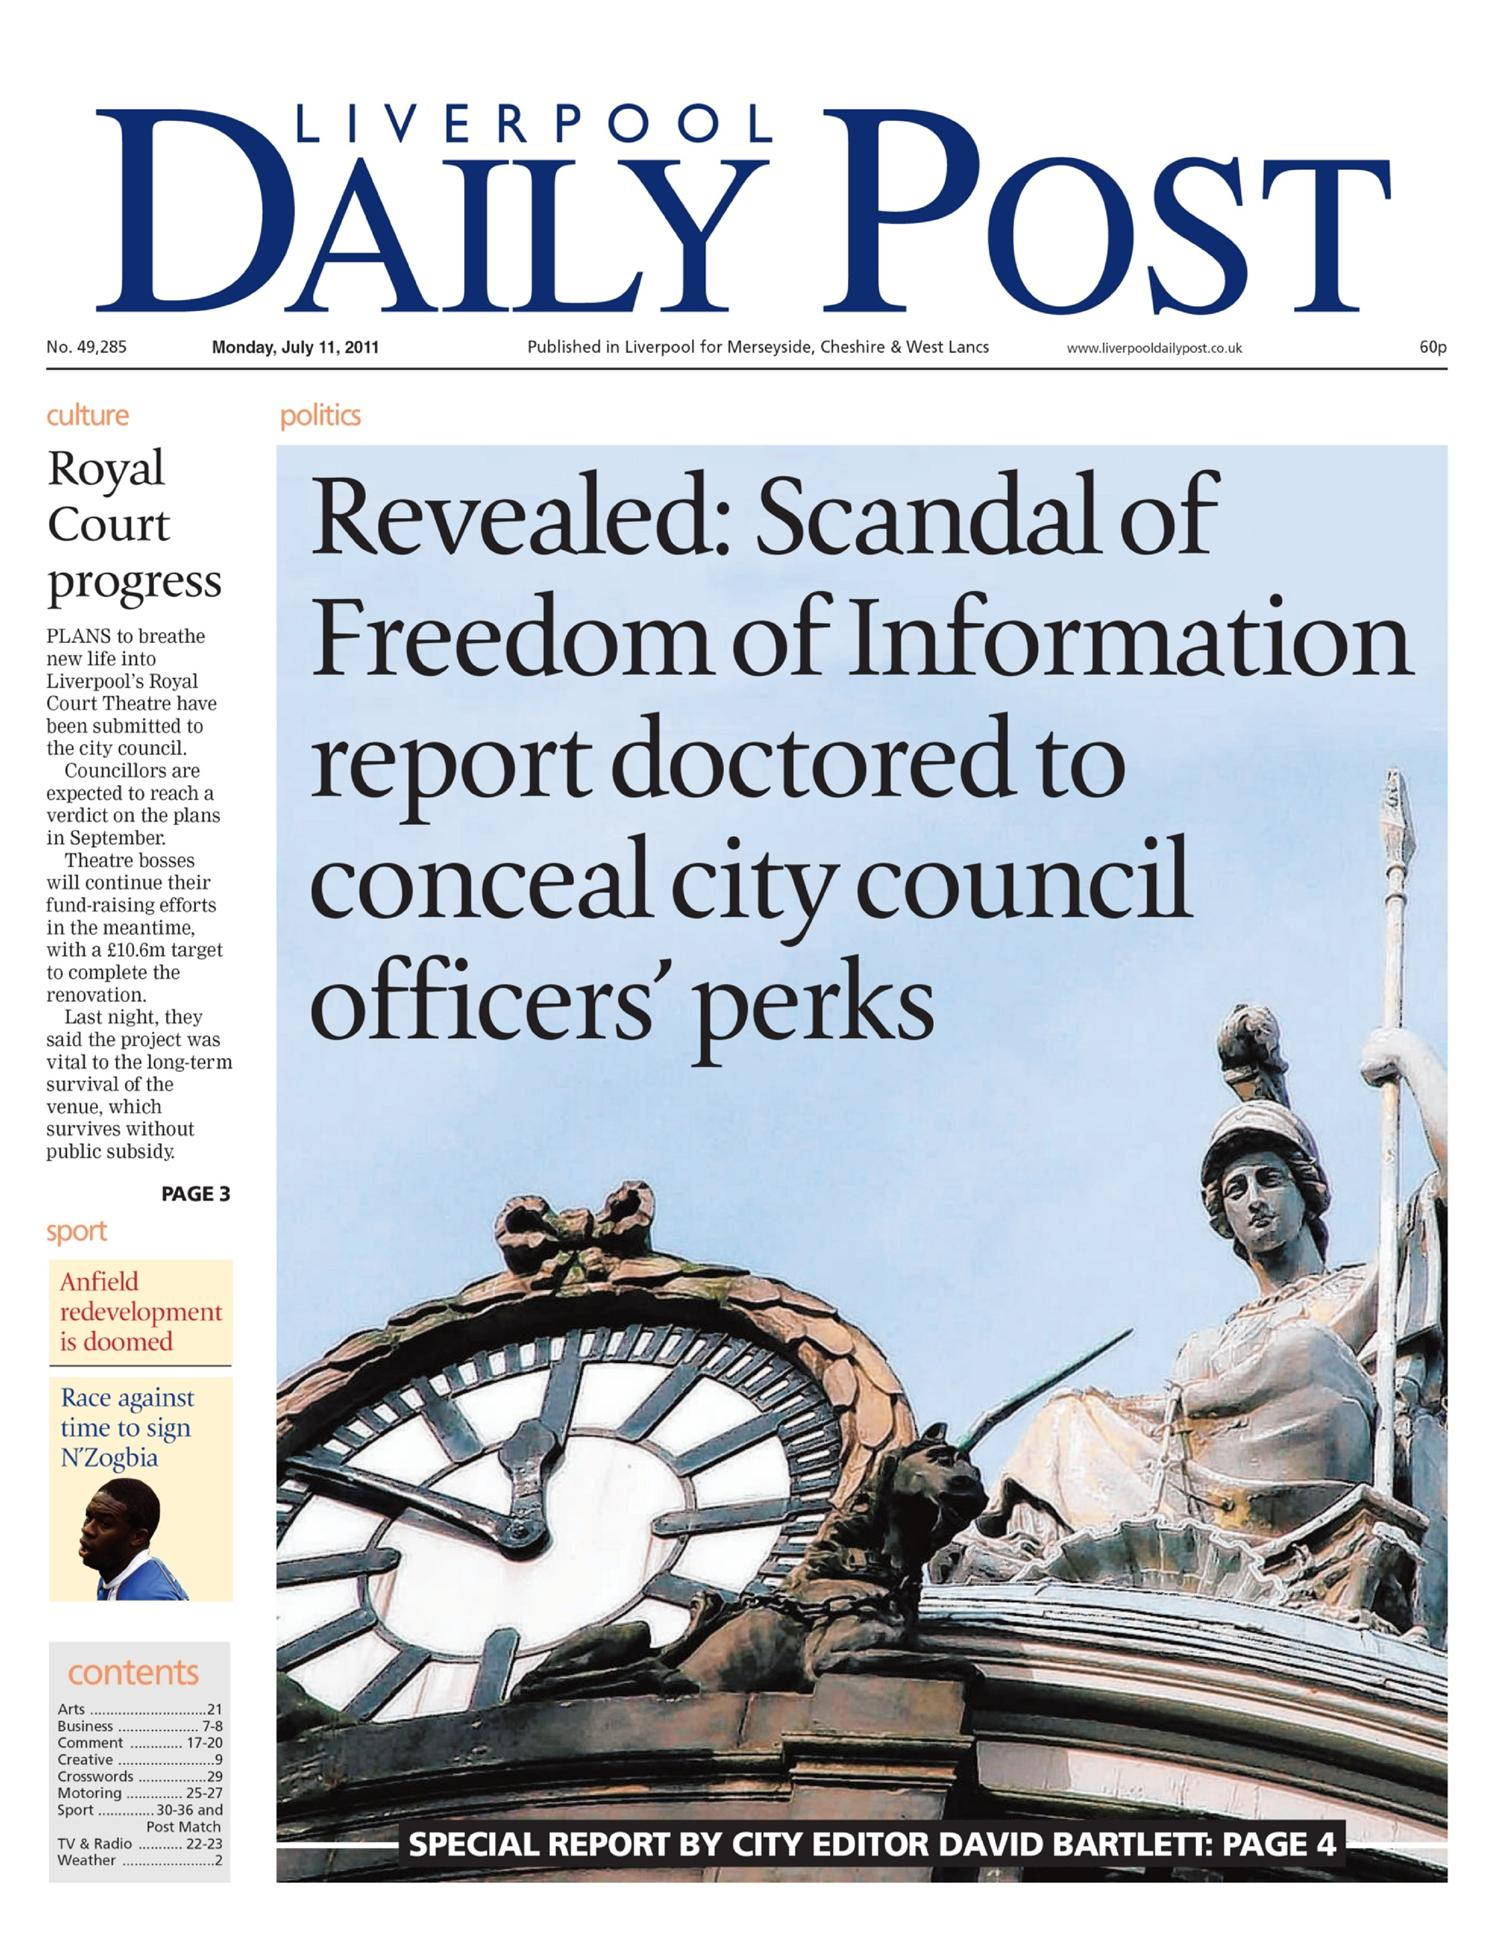 The Council Which Investigated Why An Foi Information Was Doctored But Didn T Tell The